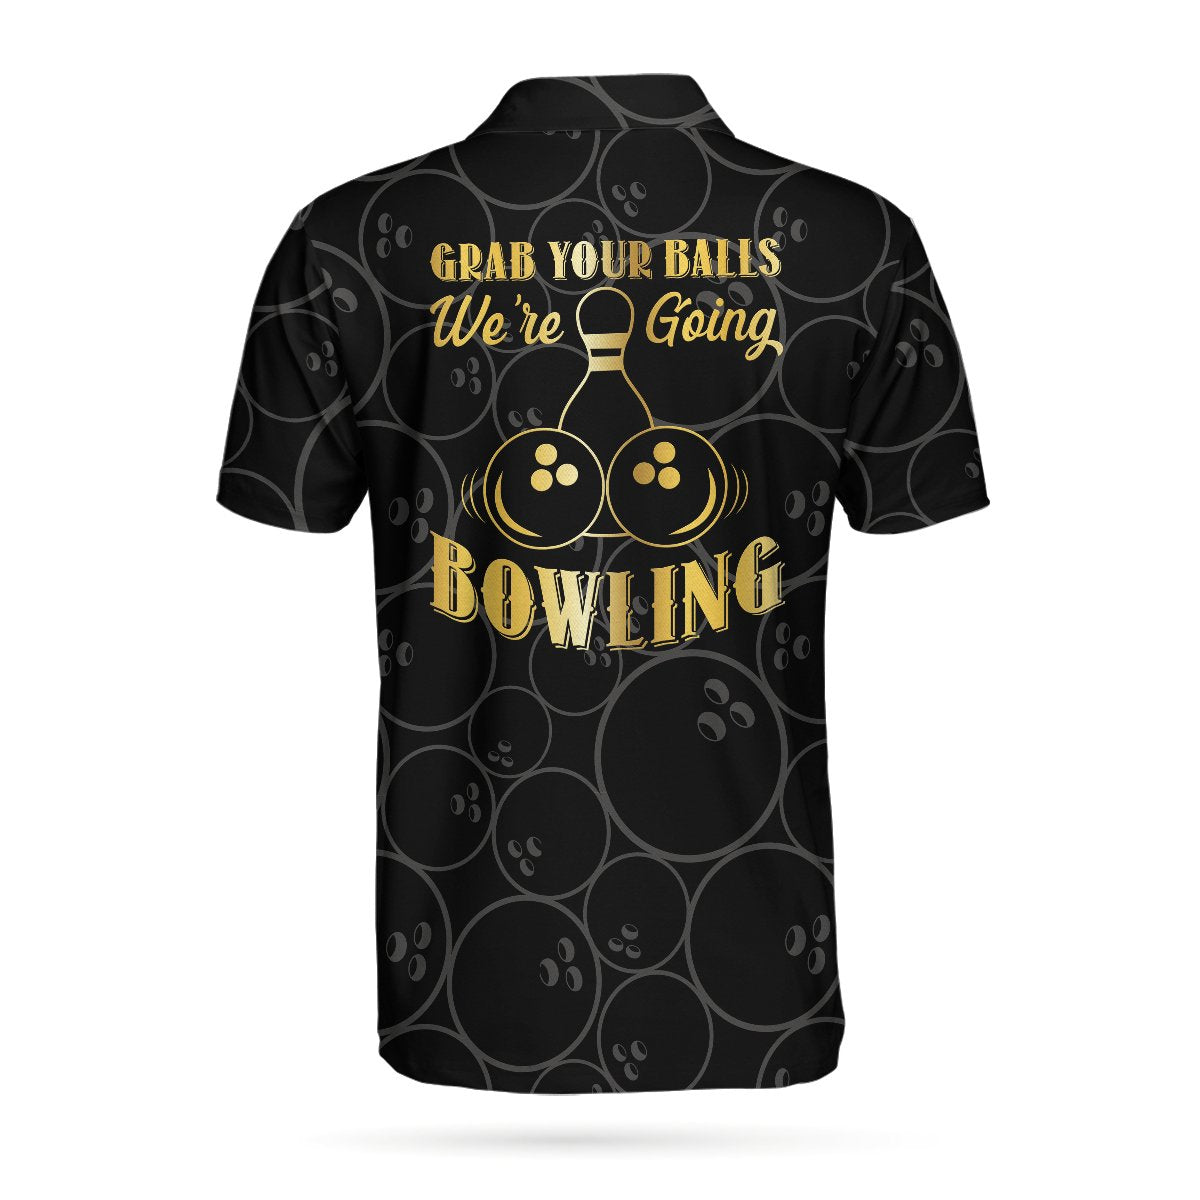 Grab Your Ball We're Going Bowling EZ24 1304 Polo Shirt